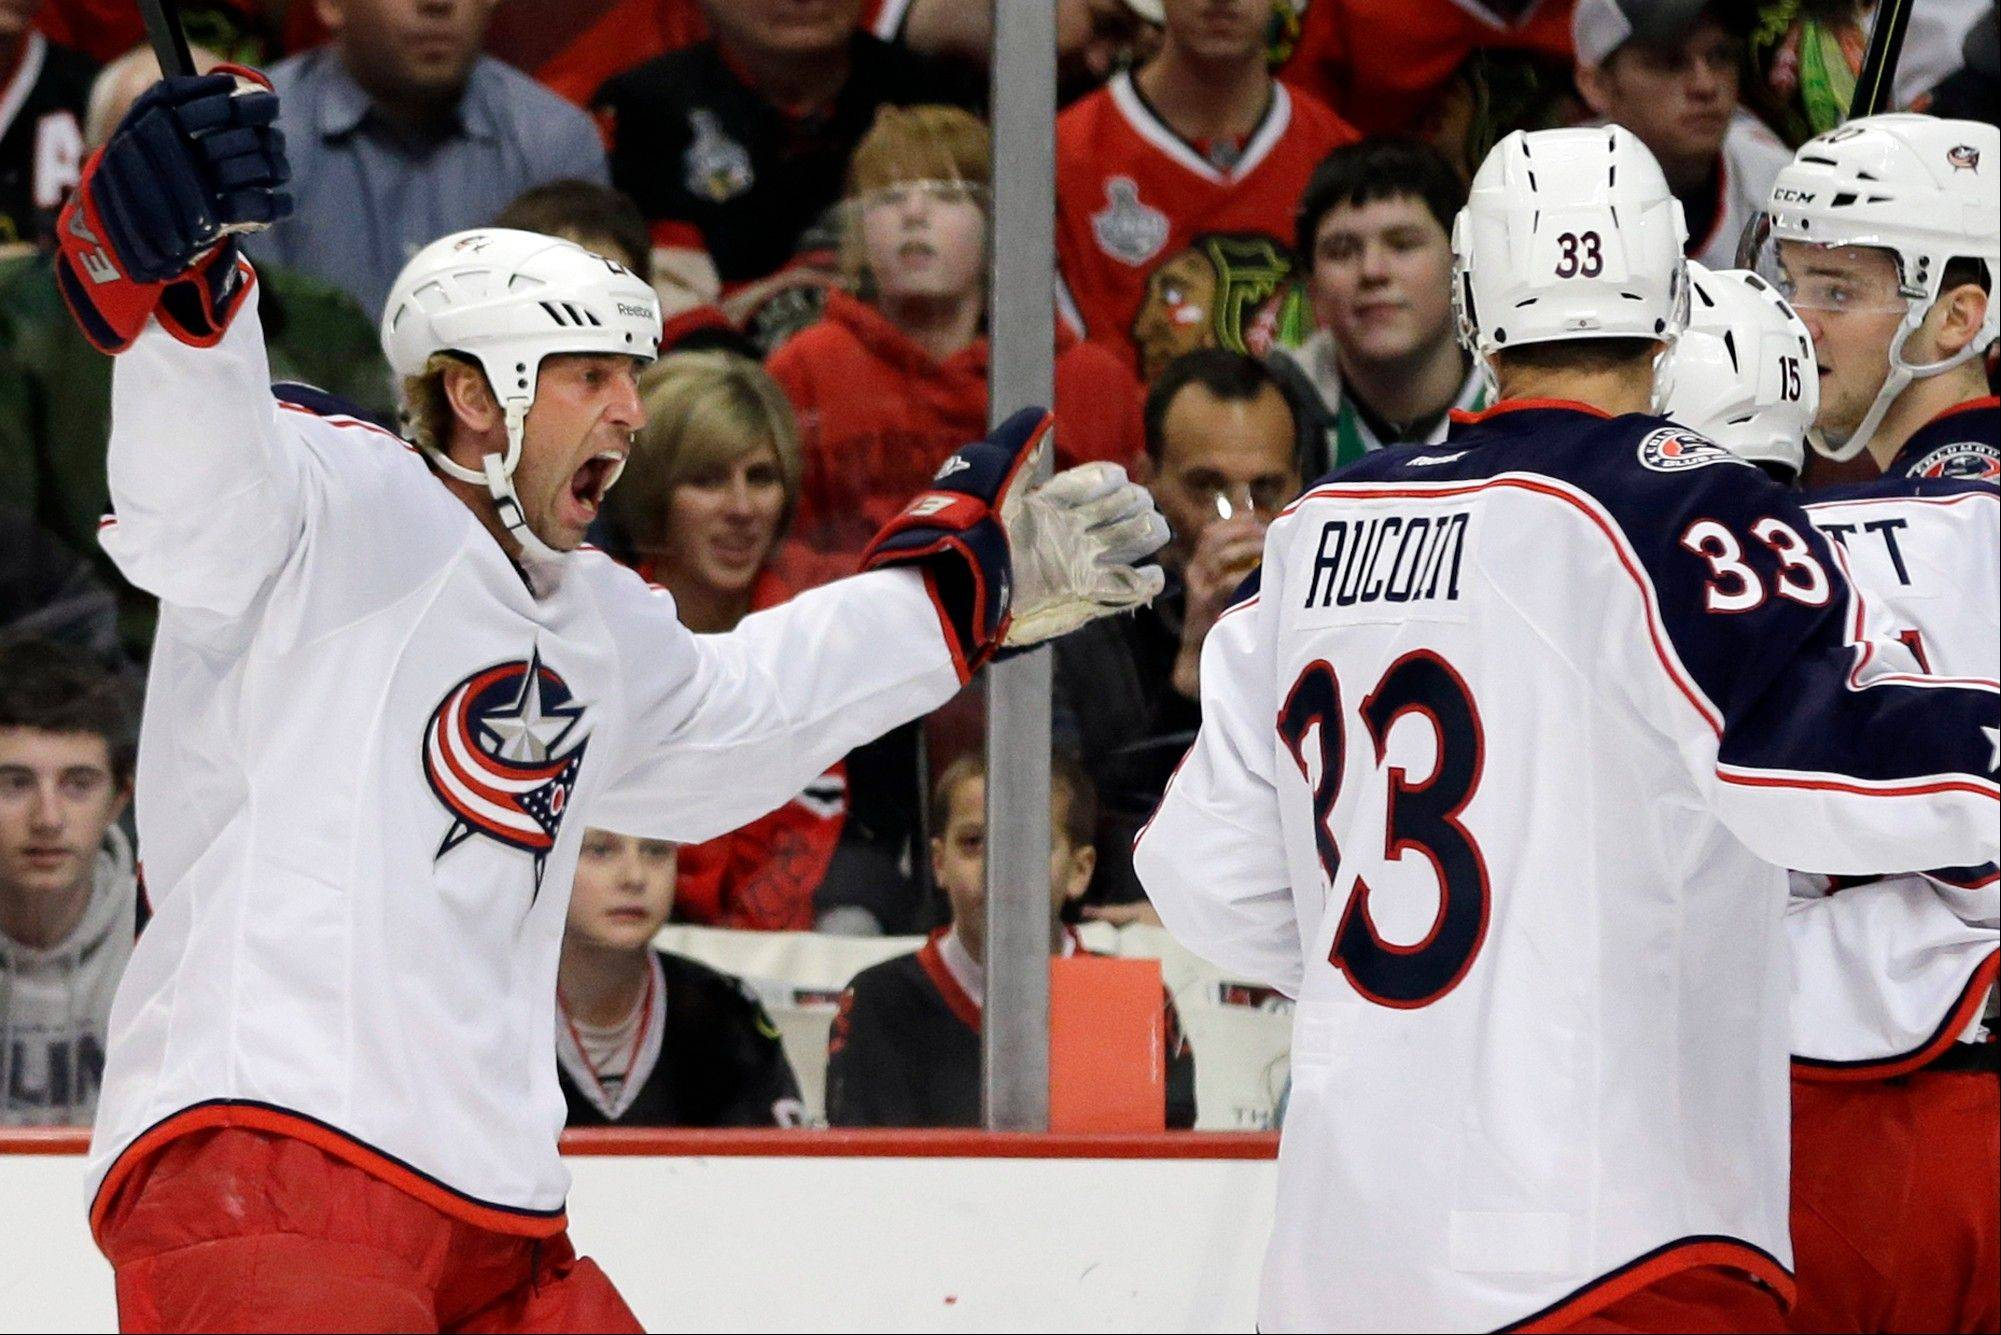 Columbus Blue Jackets' Vinny Prospal, left, celebrates with teammates after scoring against the Chicago Blackhawks during the first period.